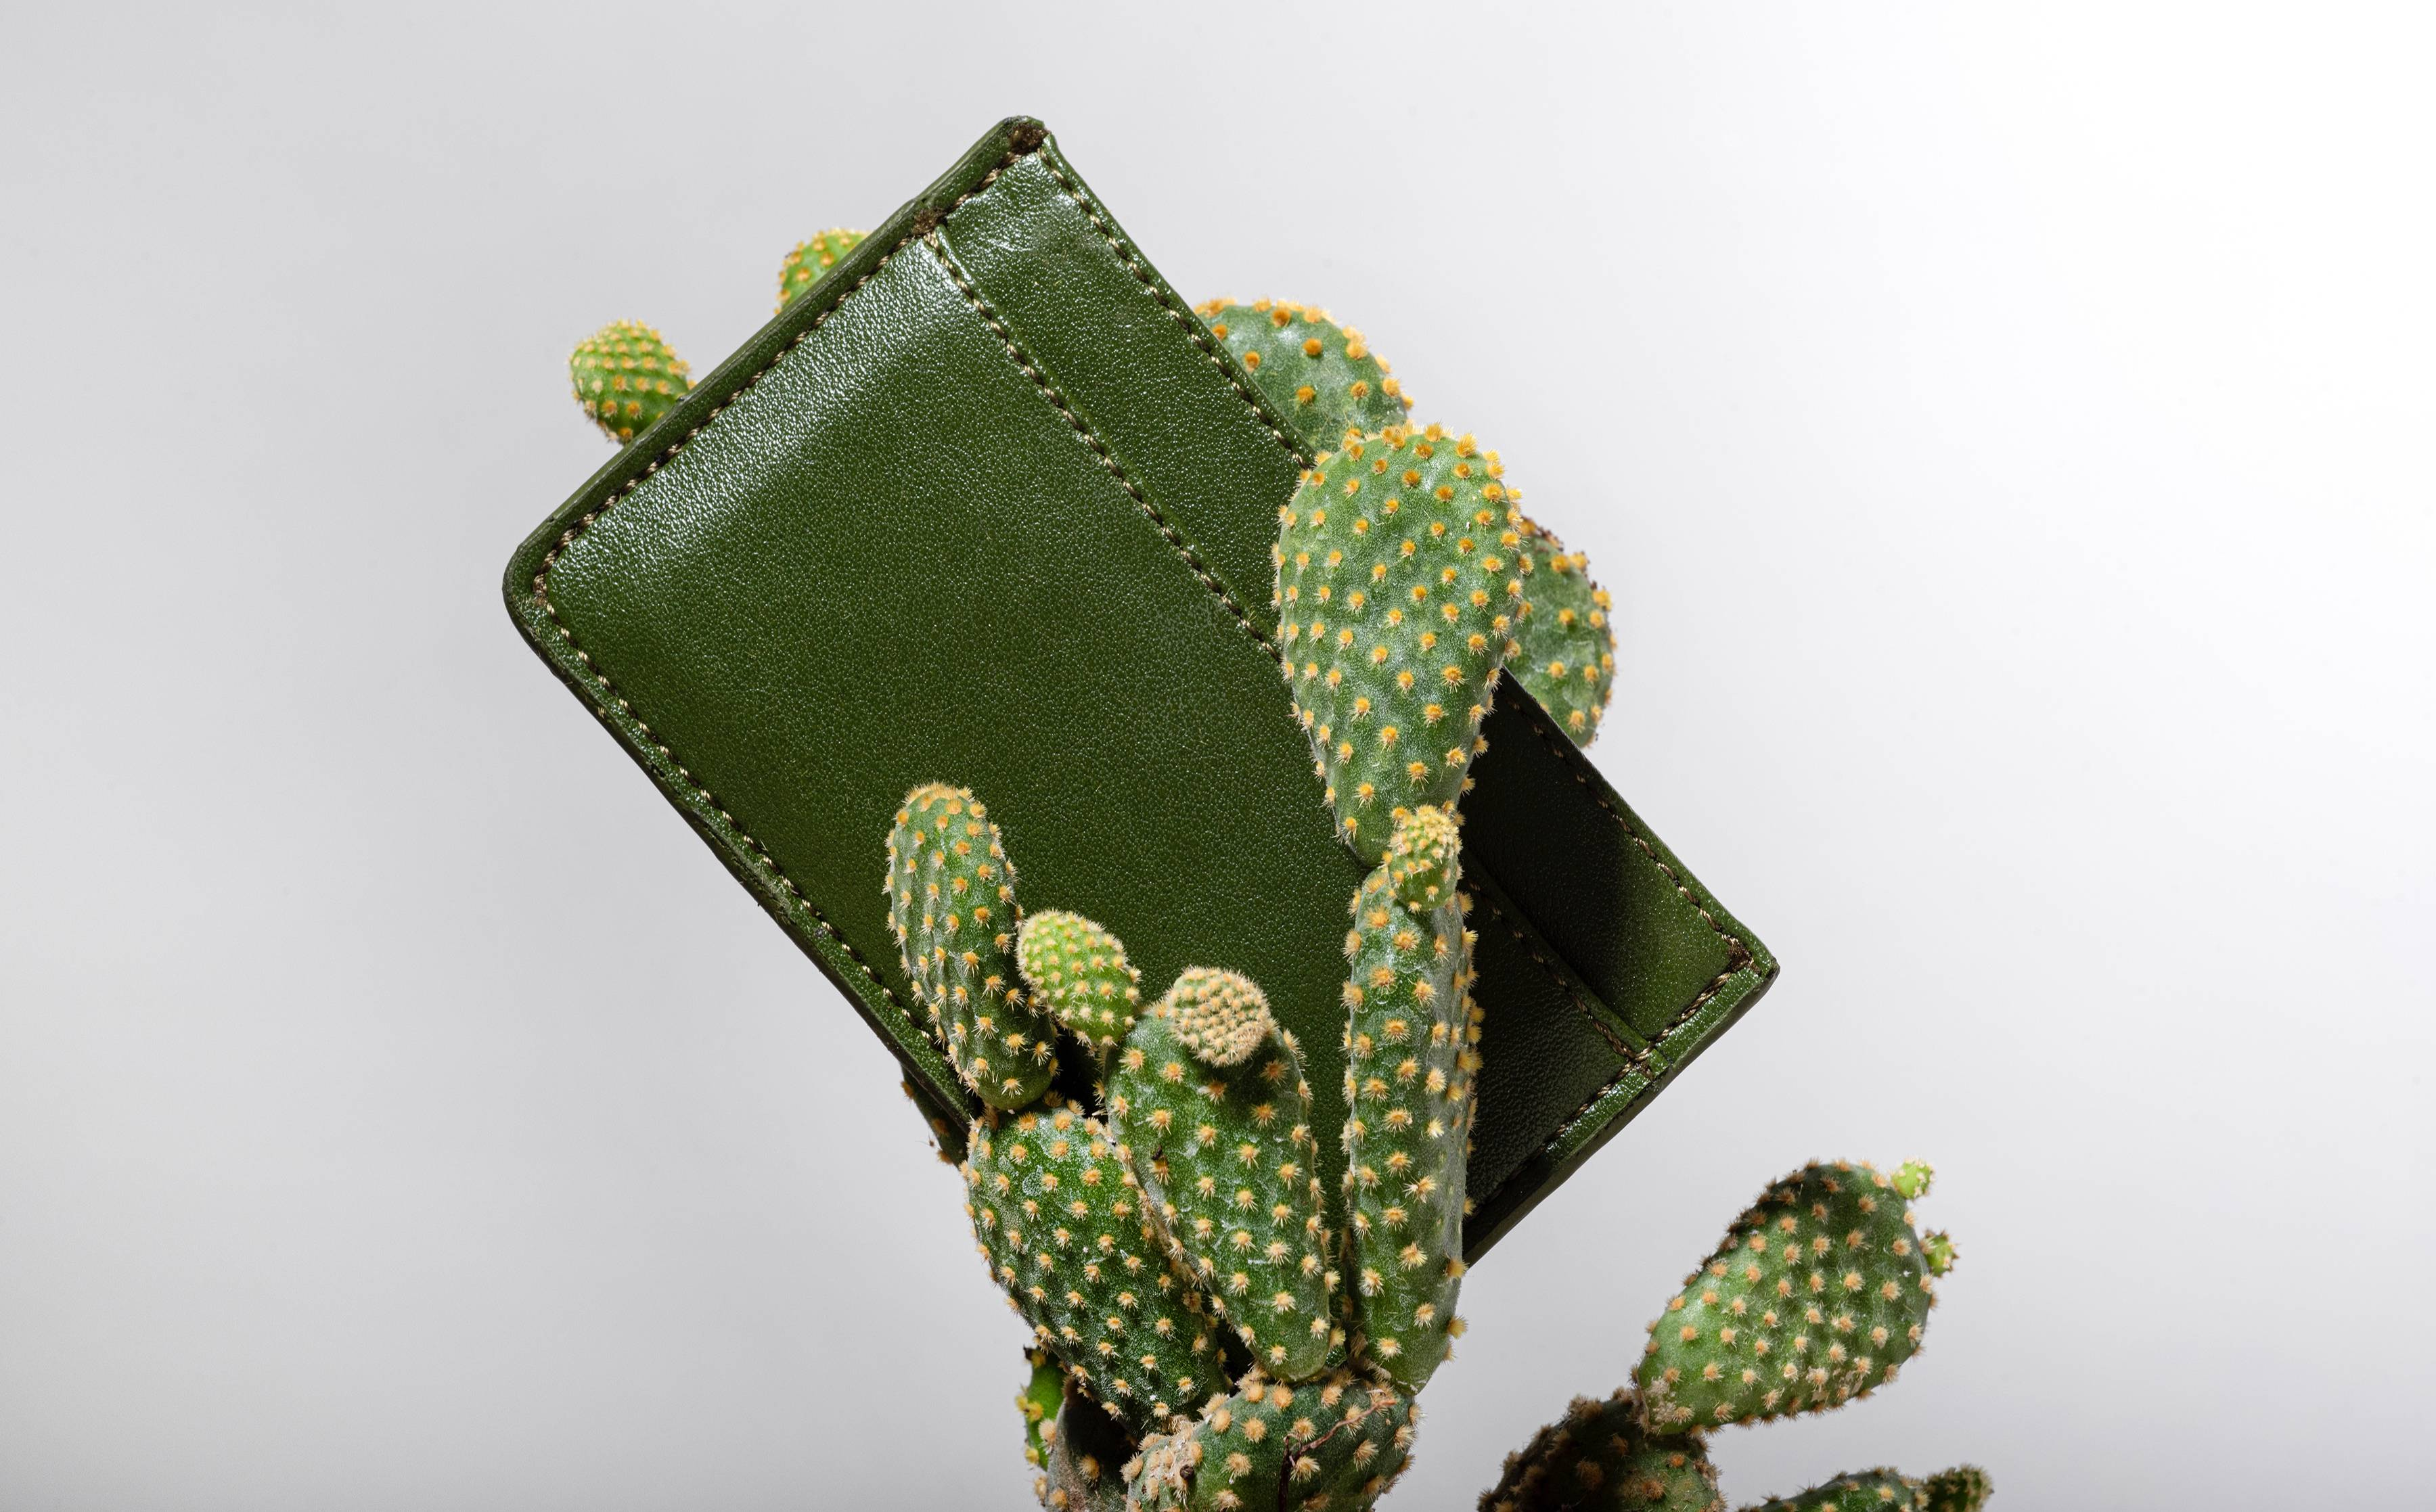 Accessories brand Cacto announces it is carbon-negative